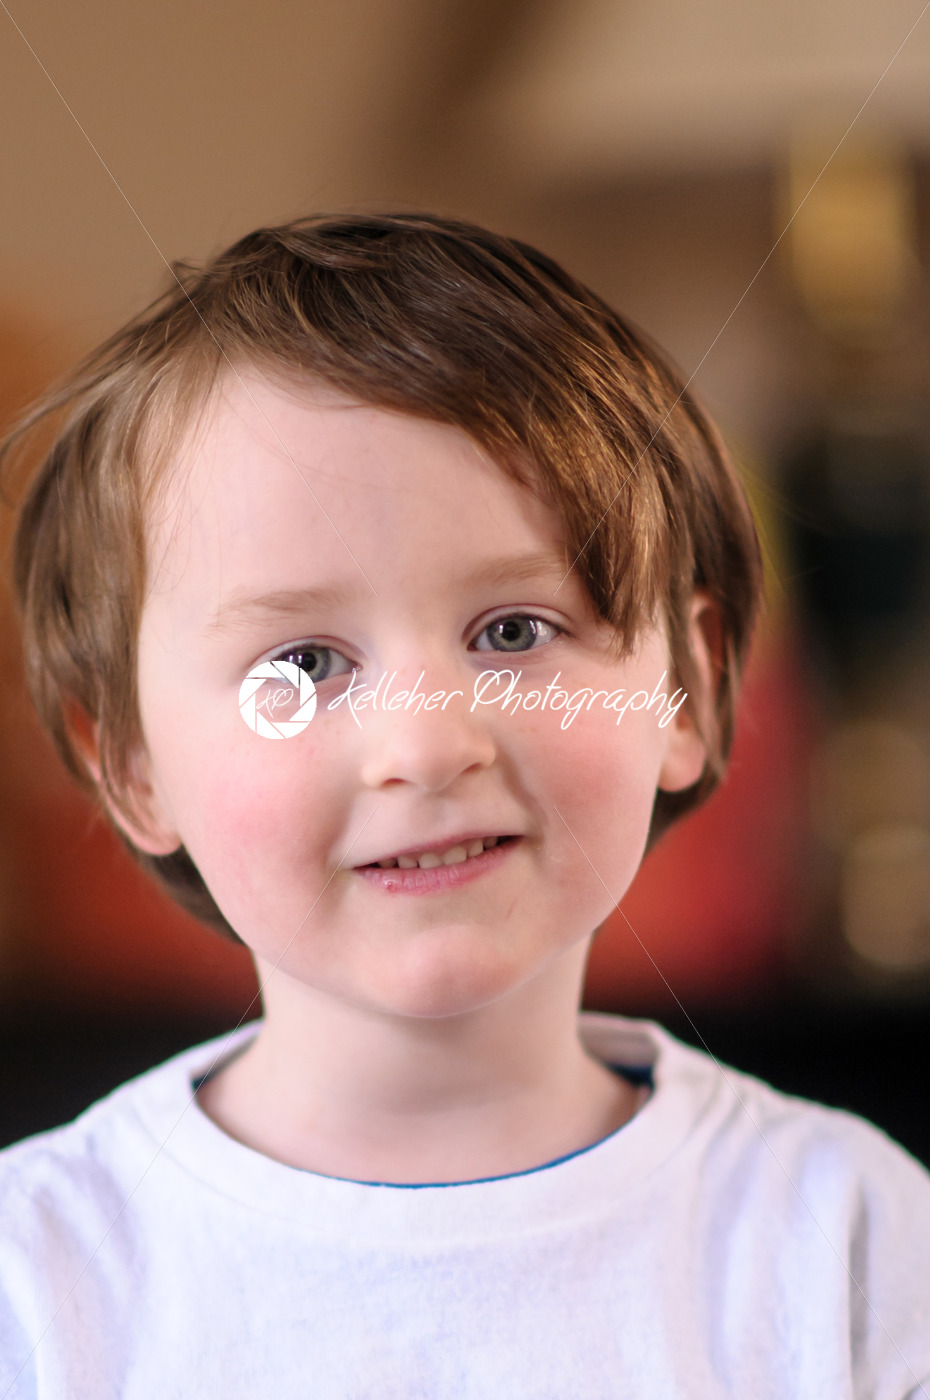 Portrait of a cute little boy smiling Indoors - Kelleher Photography Store